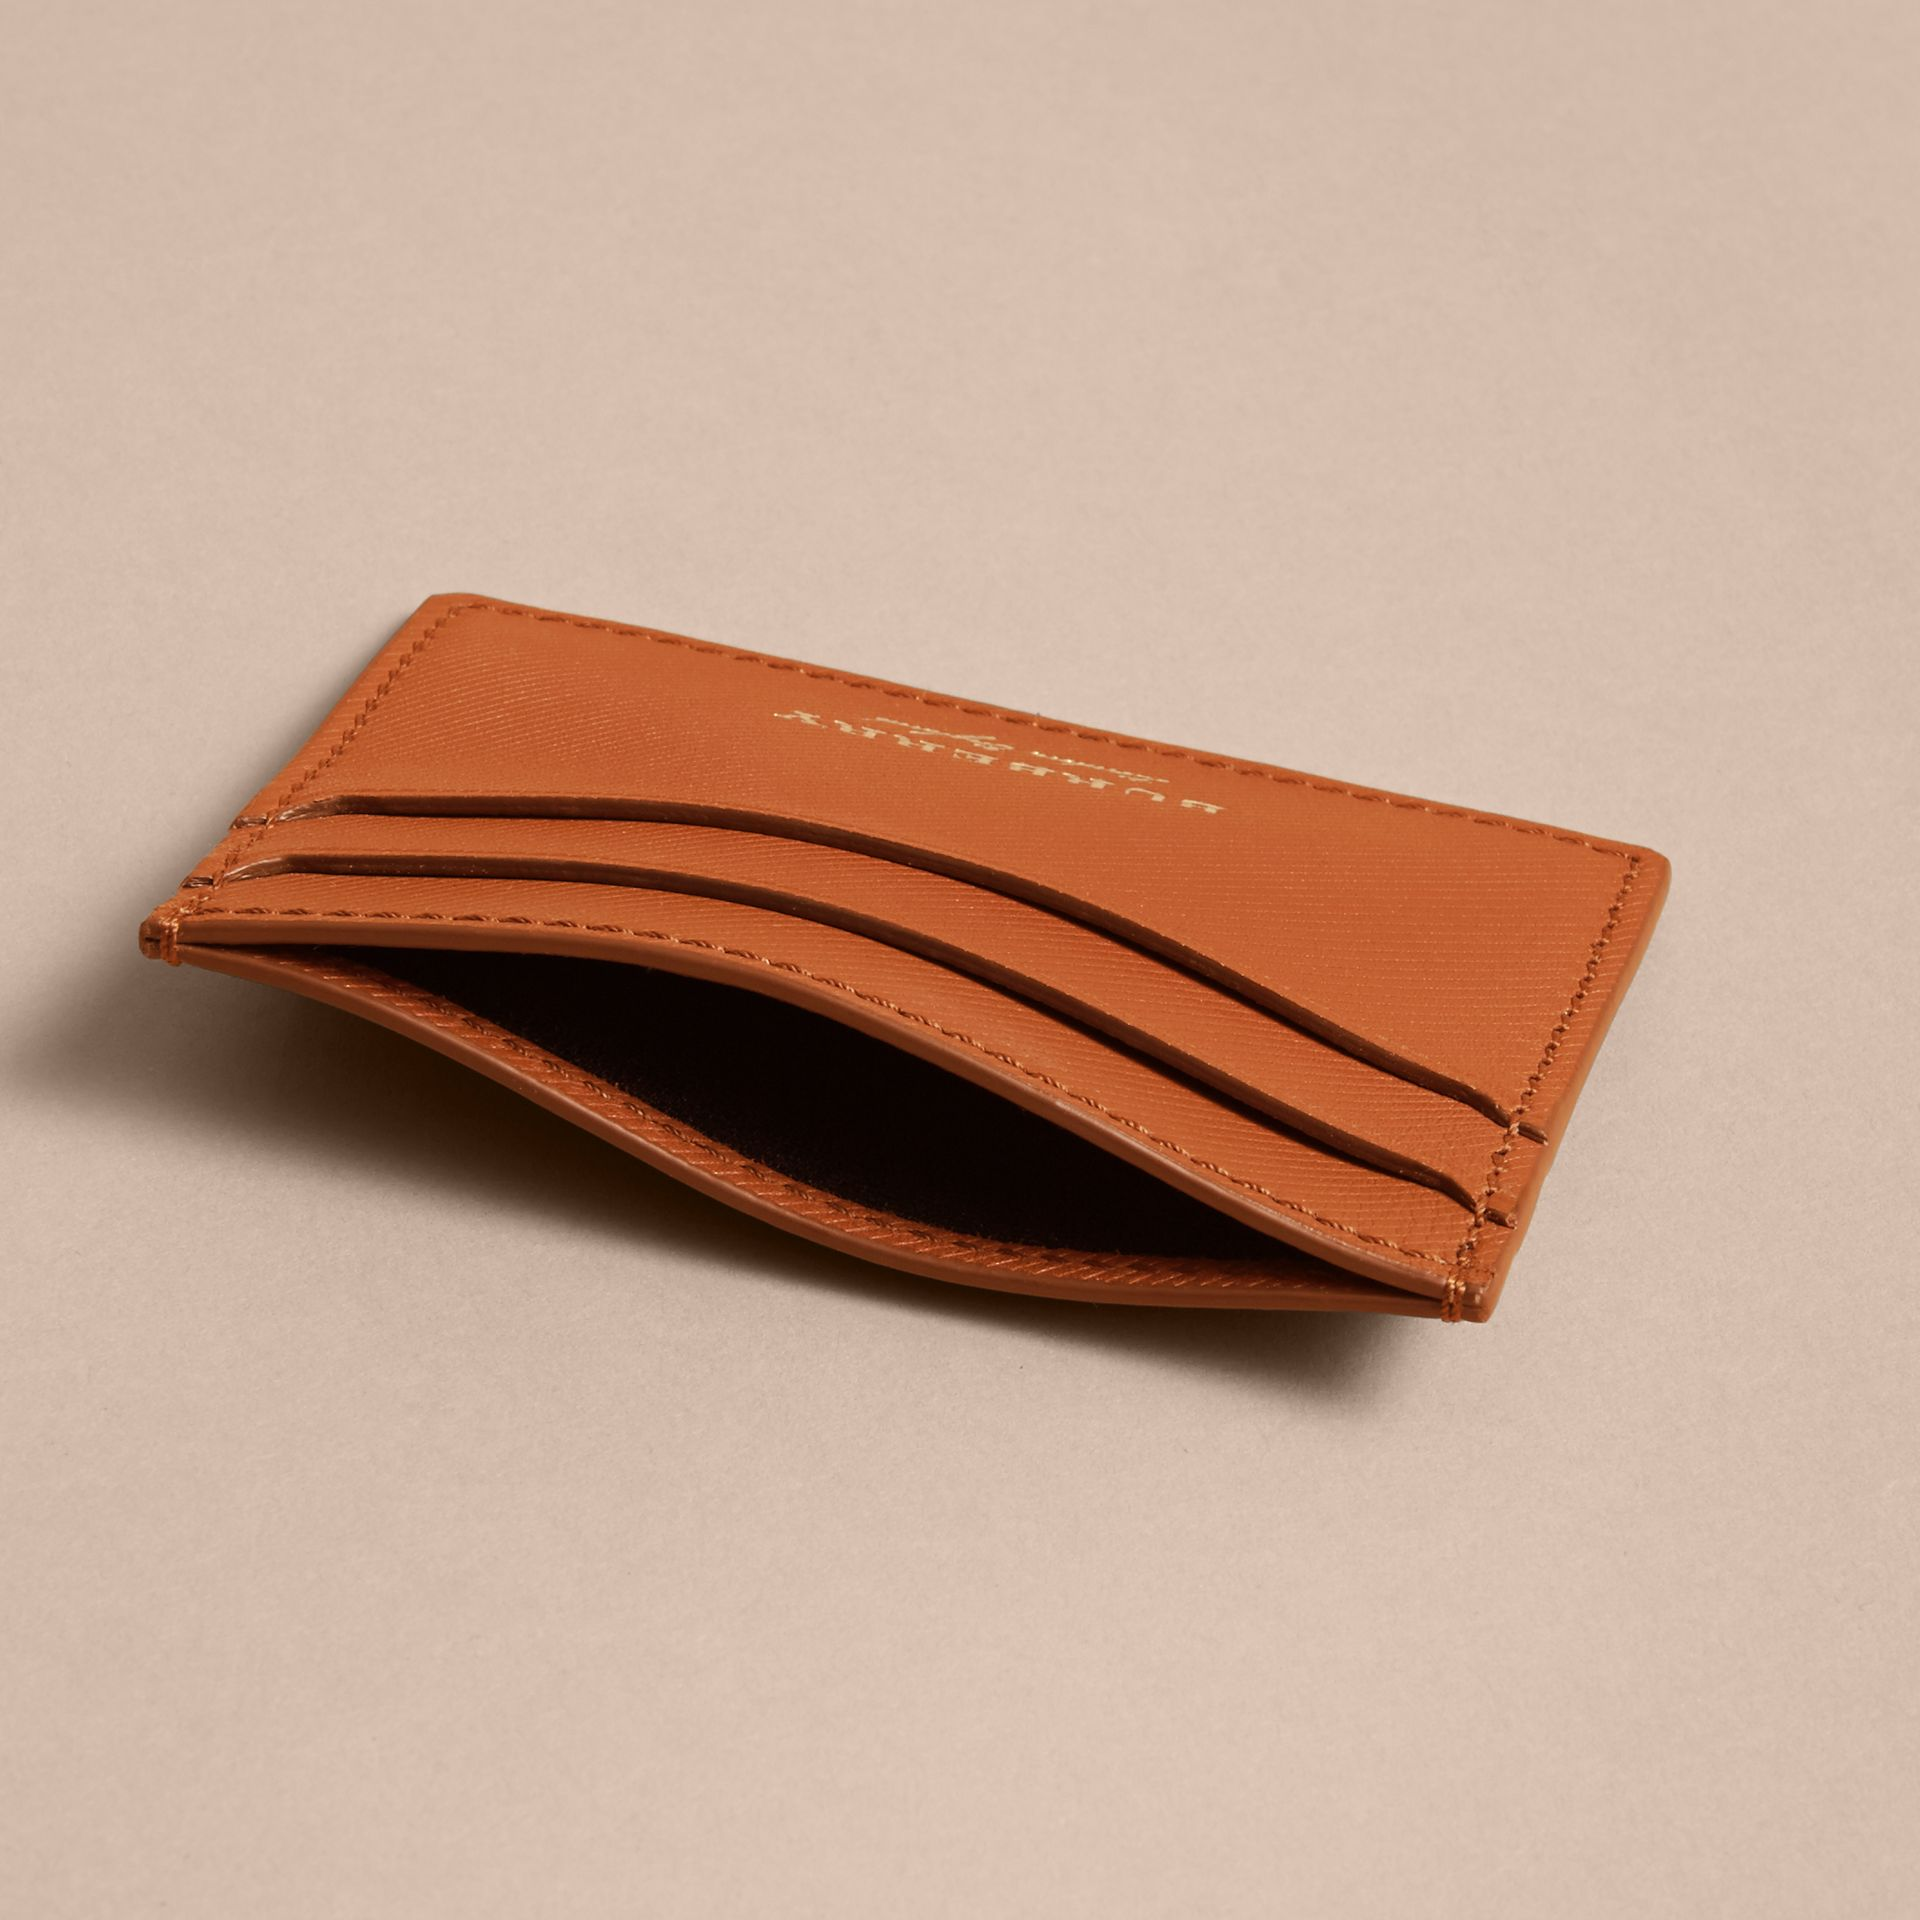 Trench Leather Card Case in Tan - Men | Burberry Singapore - gallery image 5